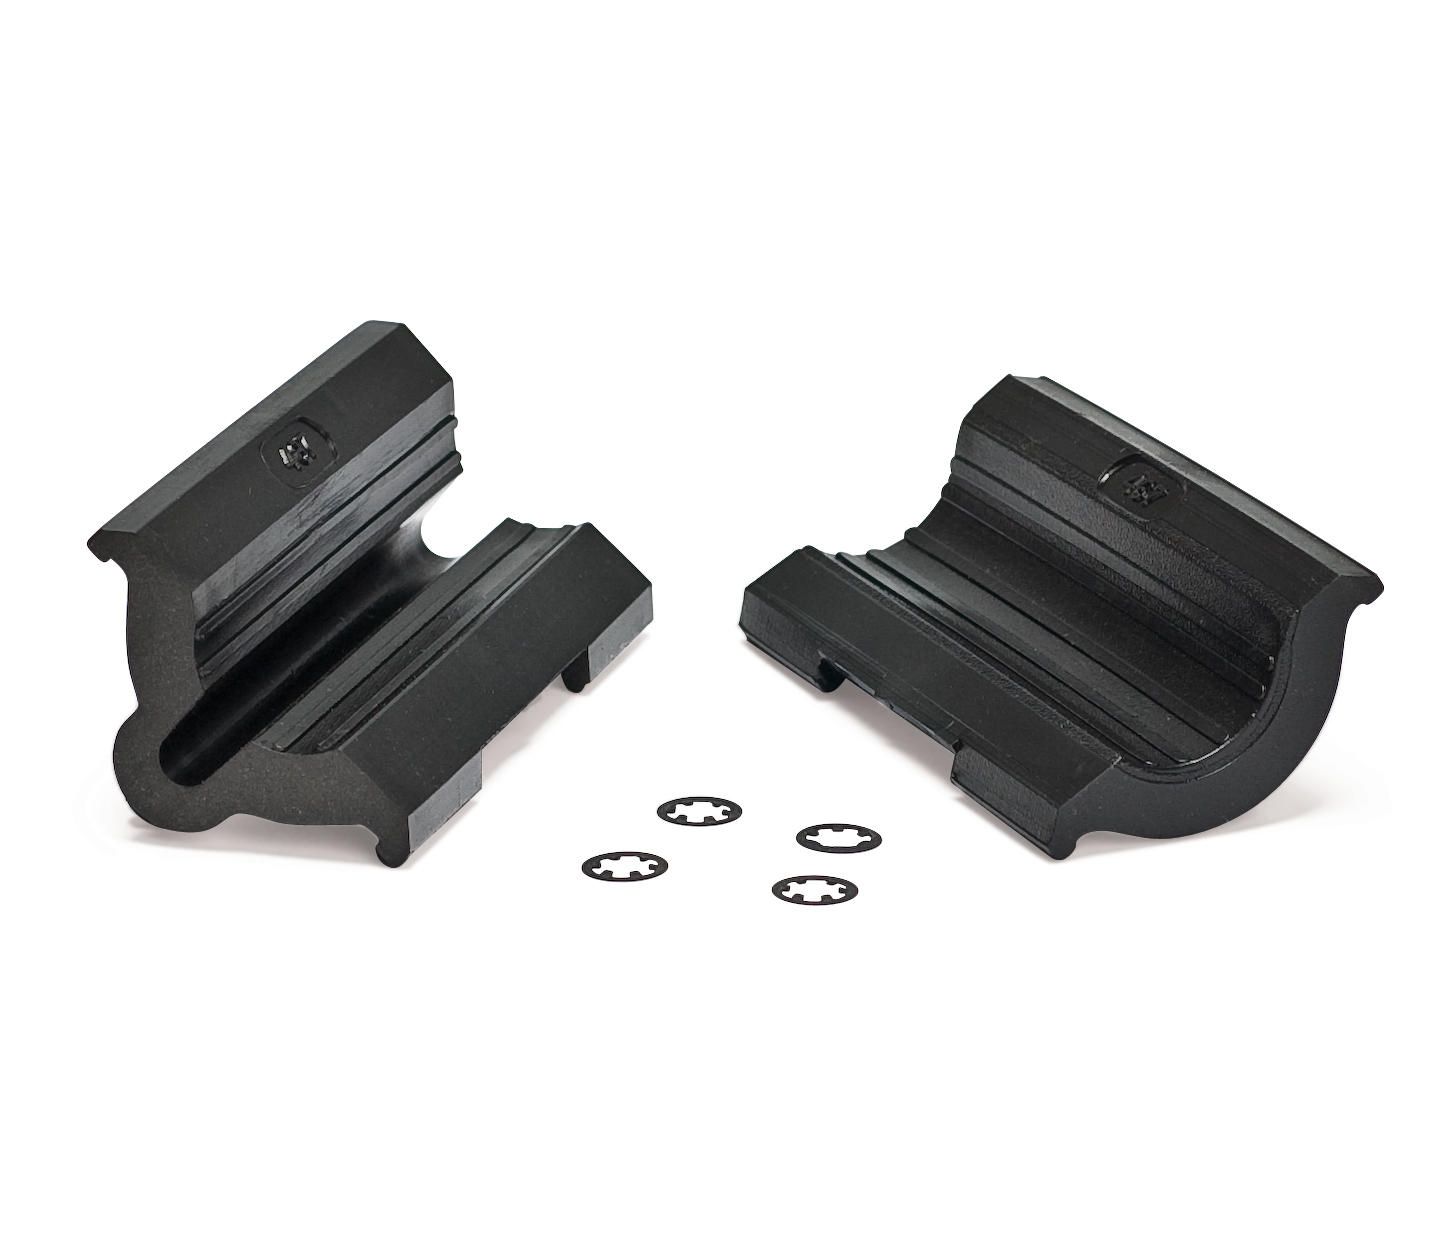 The Park Tool 467G Replacement Jaw Covers